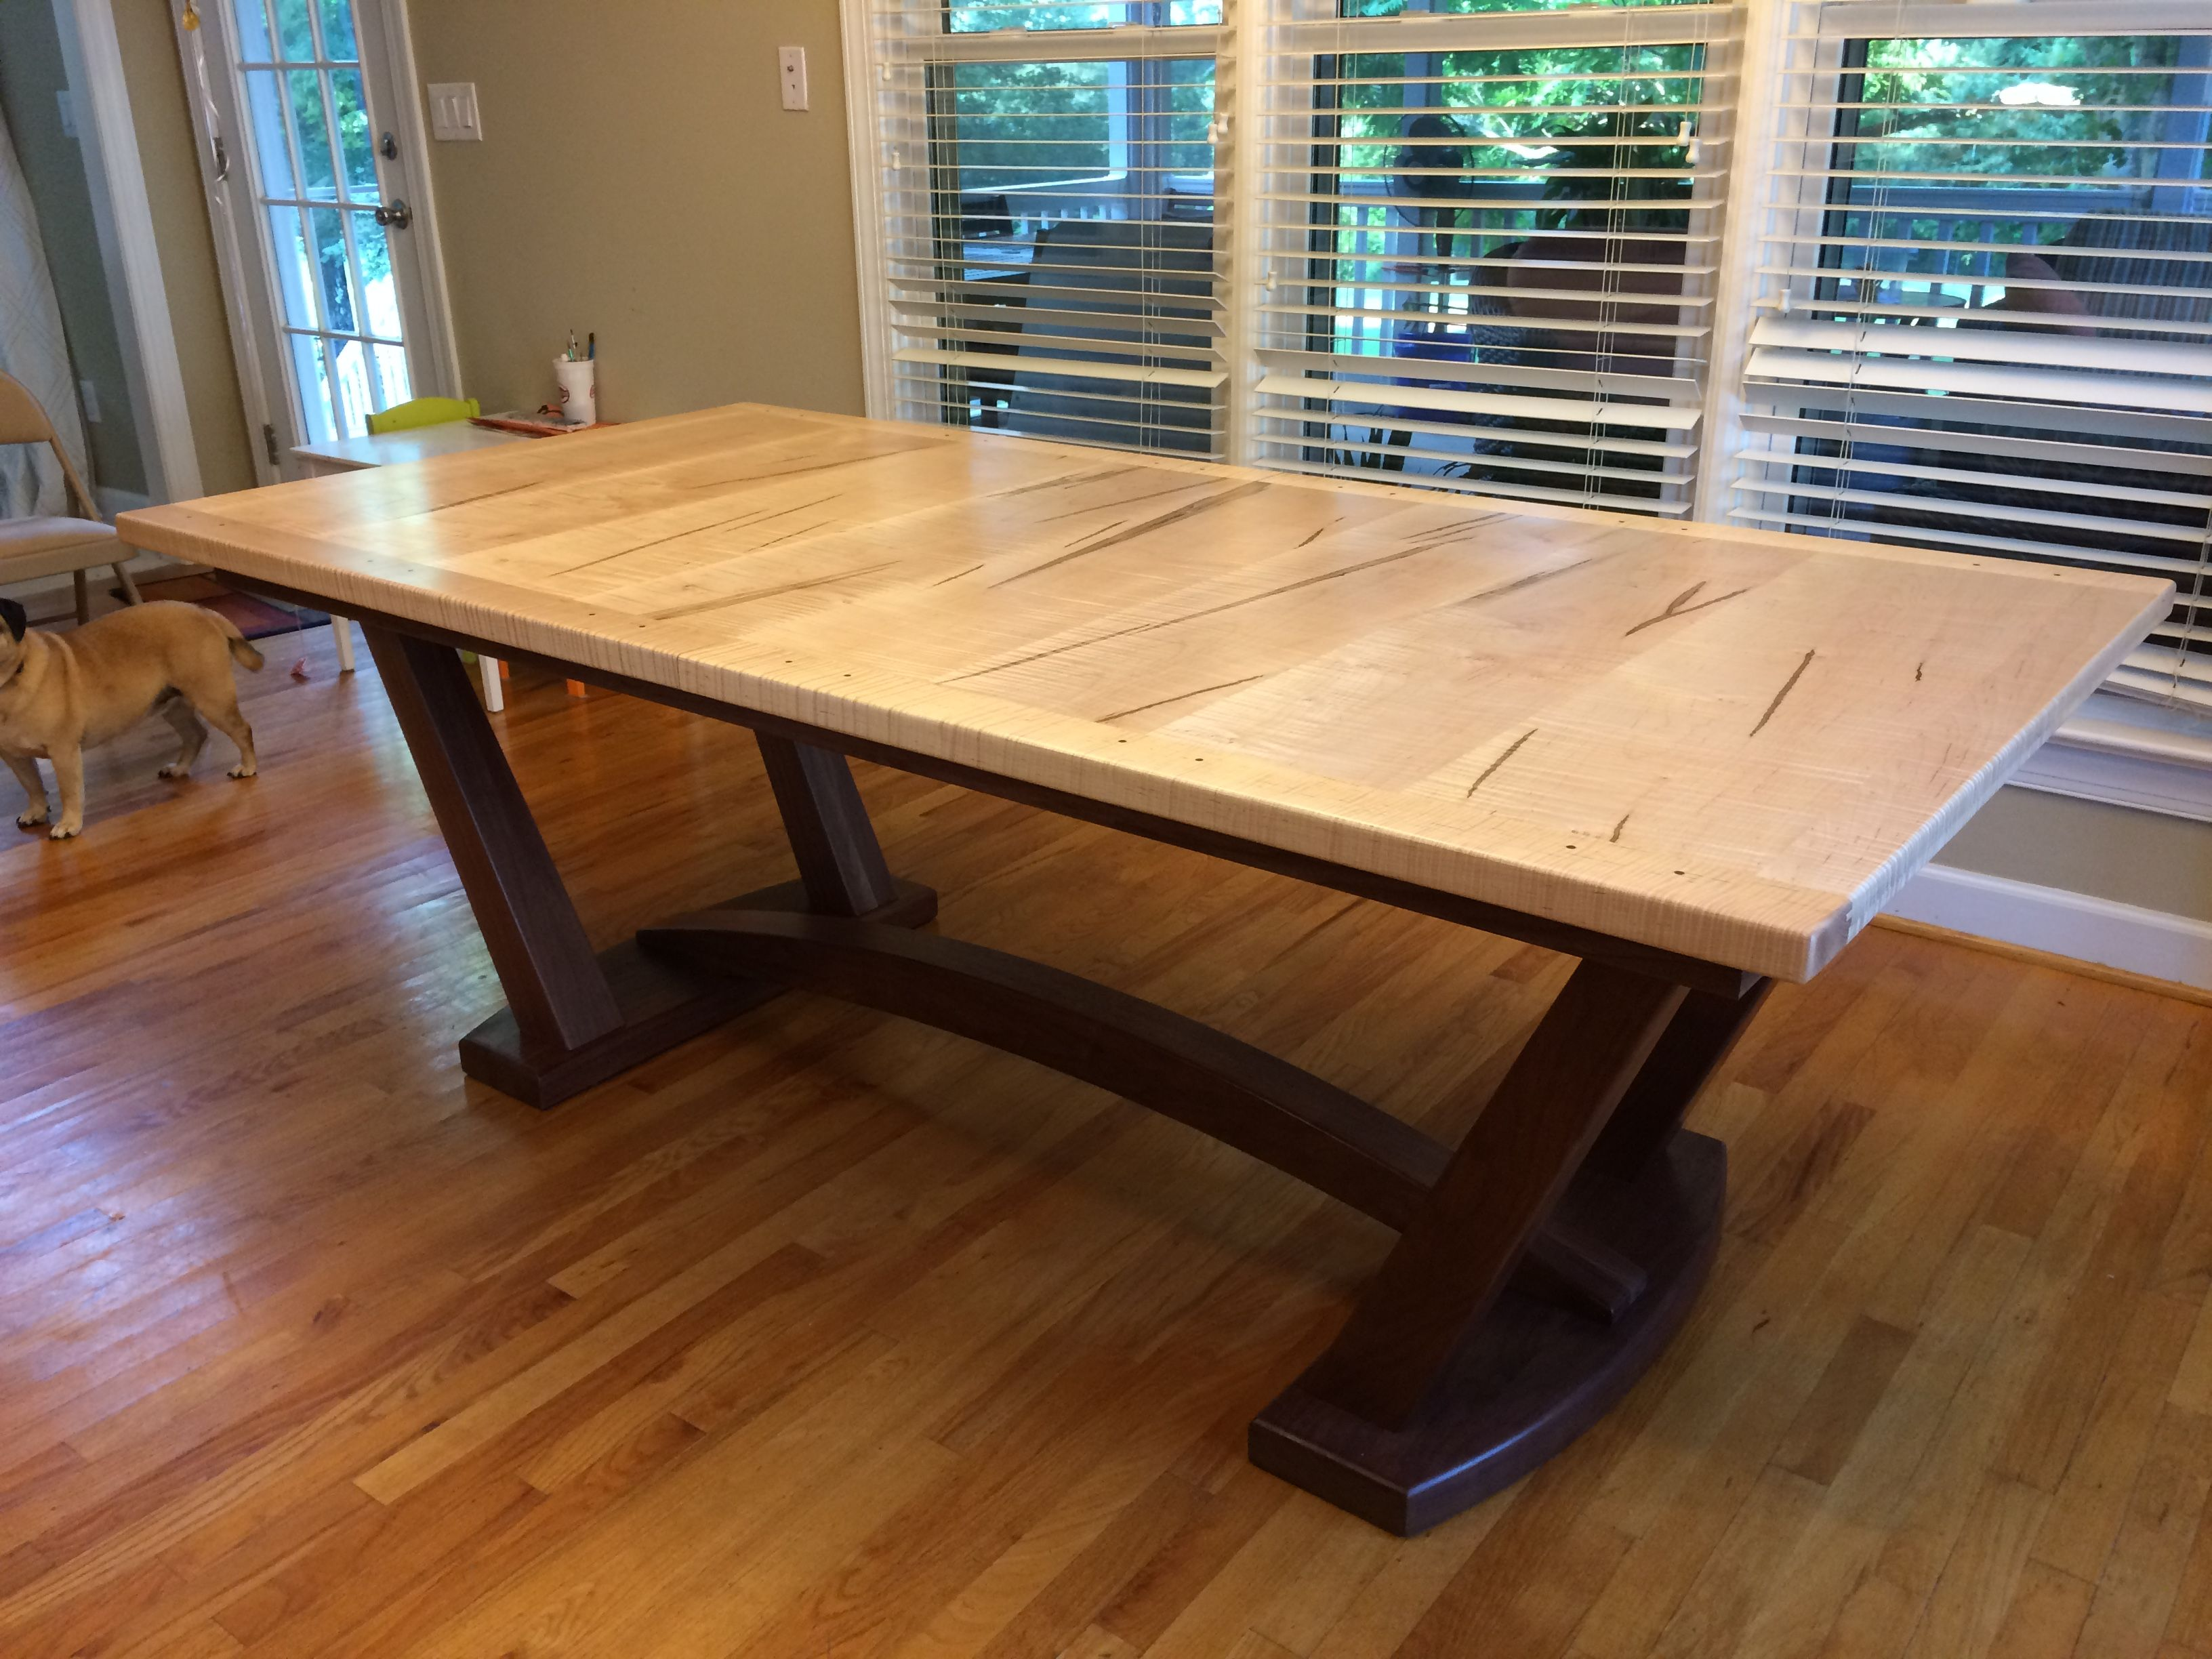 Tiger Maple Walnut Trestle Table With Butterfly Leaf Folded Underneath The Table Top Dining Table Rustic Dining Table Table